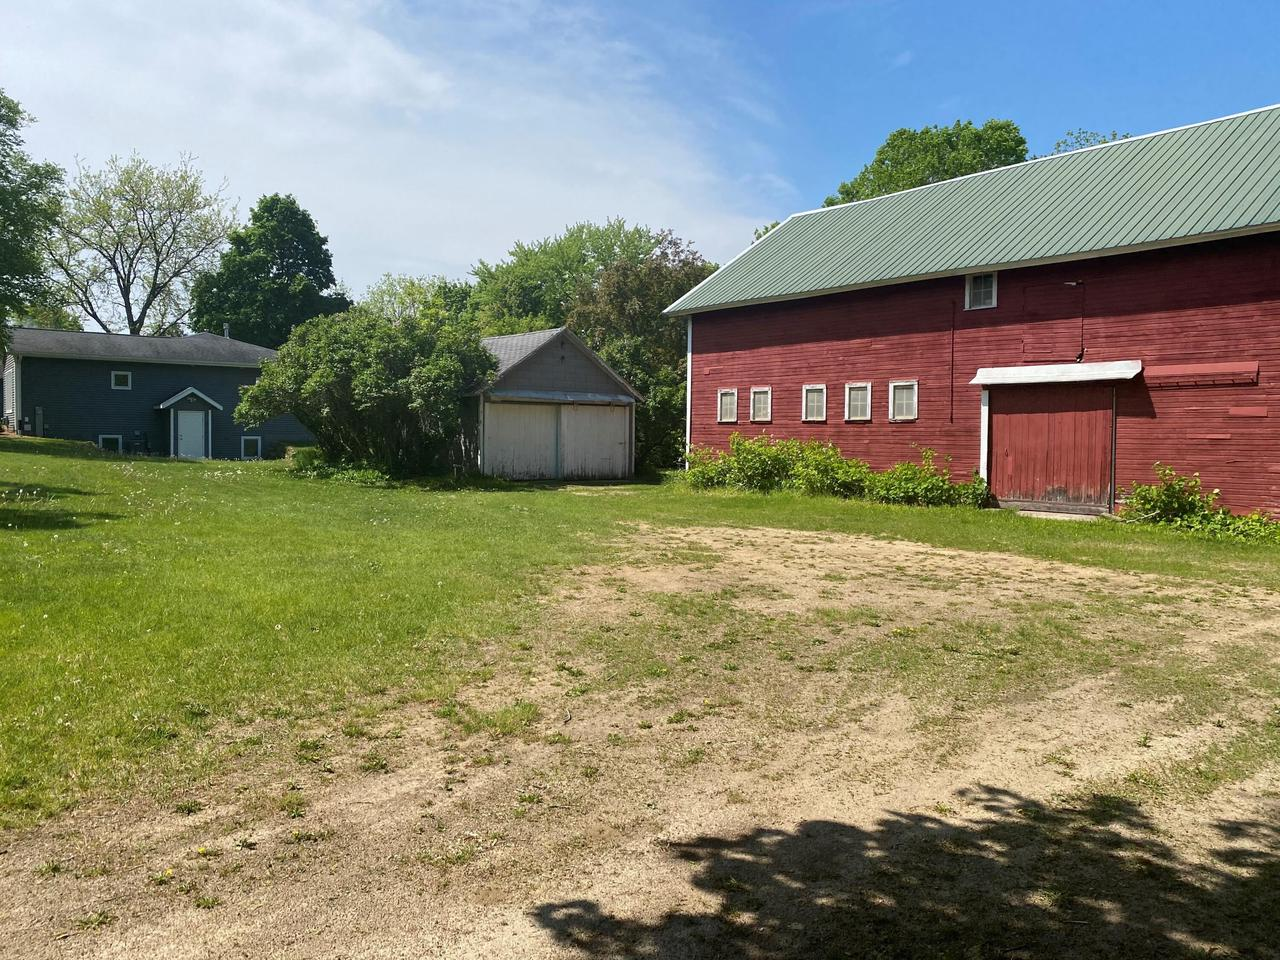 N1917 S Main St, Fort Atkinson, WI 53538